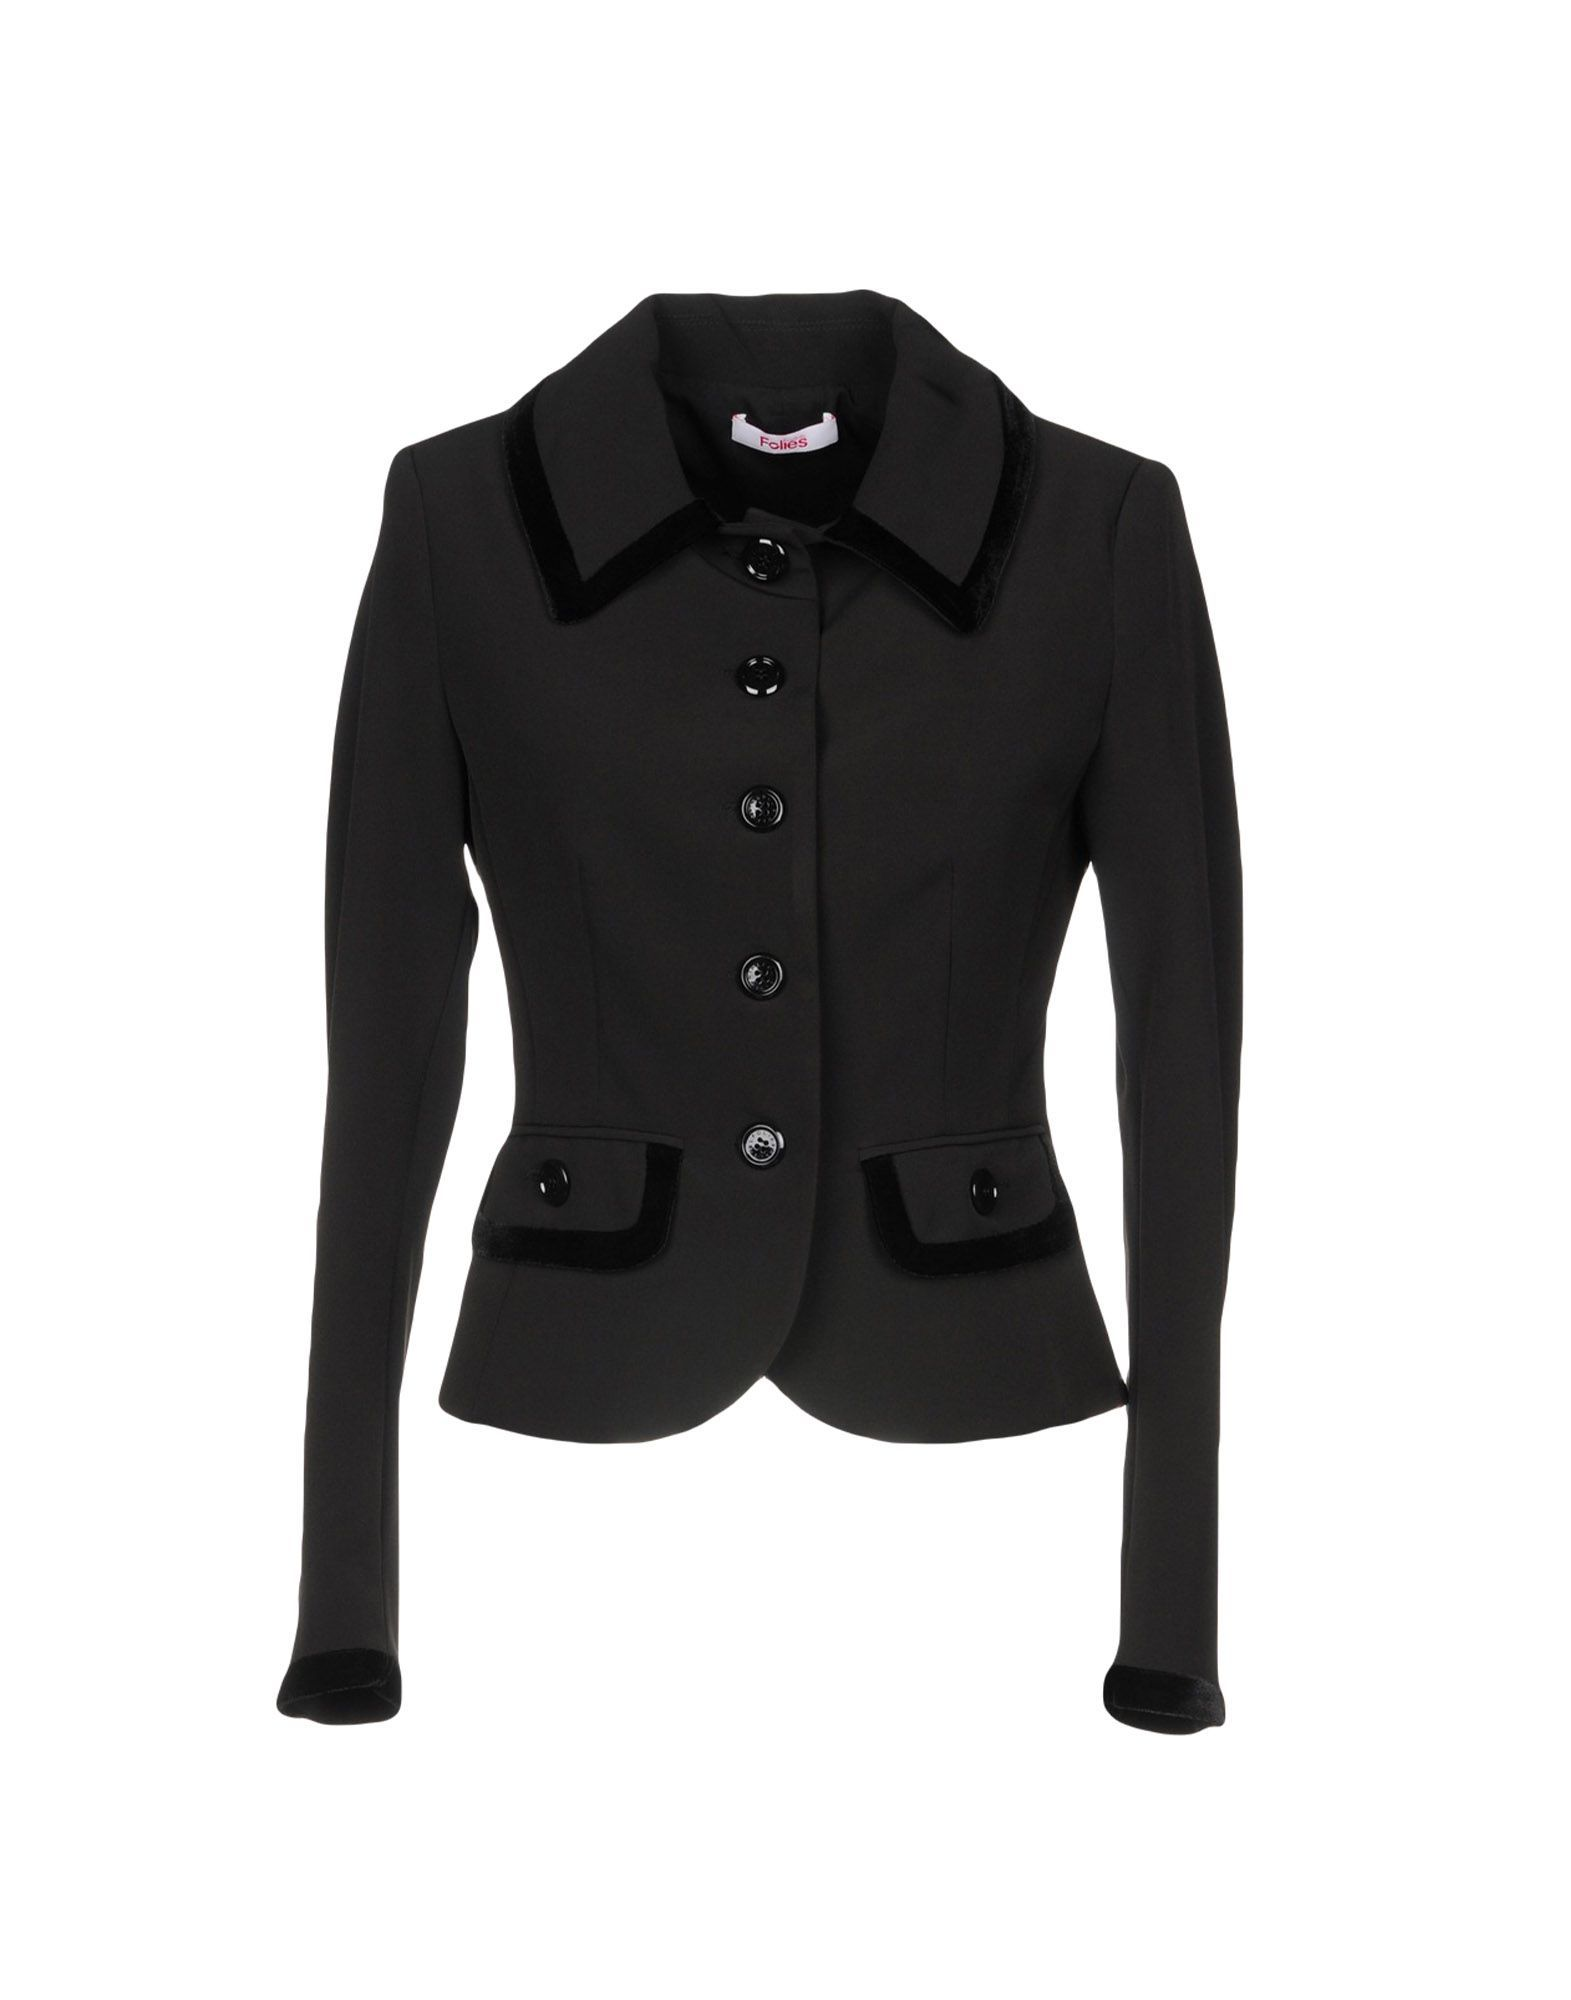 SUITS AND JACKETS Blugirl Blumarine Black Woman Polyester